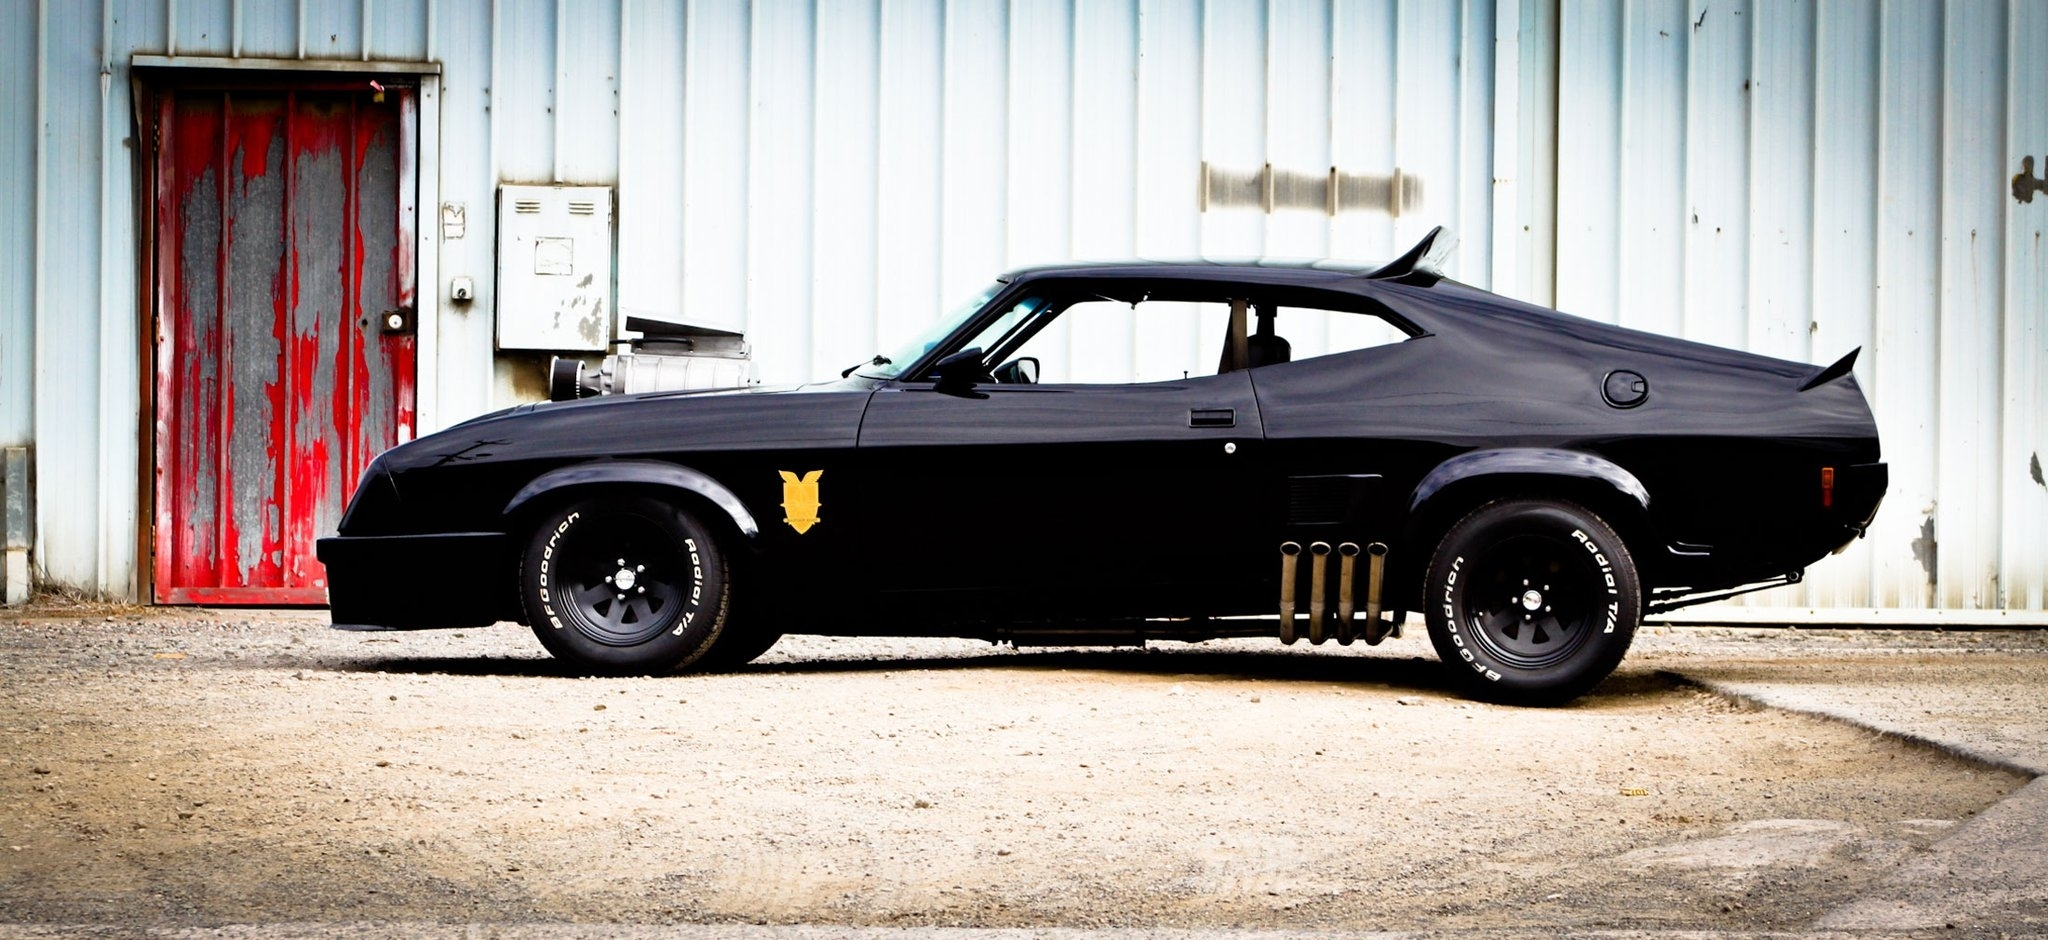 vehicles cars hot rod custom muscle black stance wallpaper background 2048x940